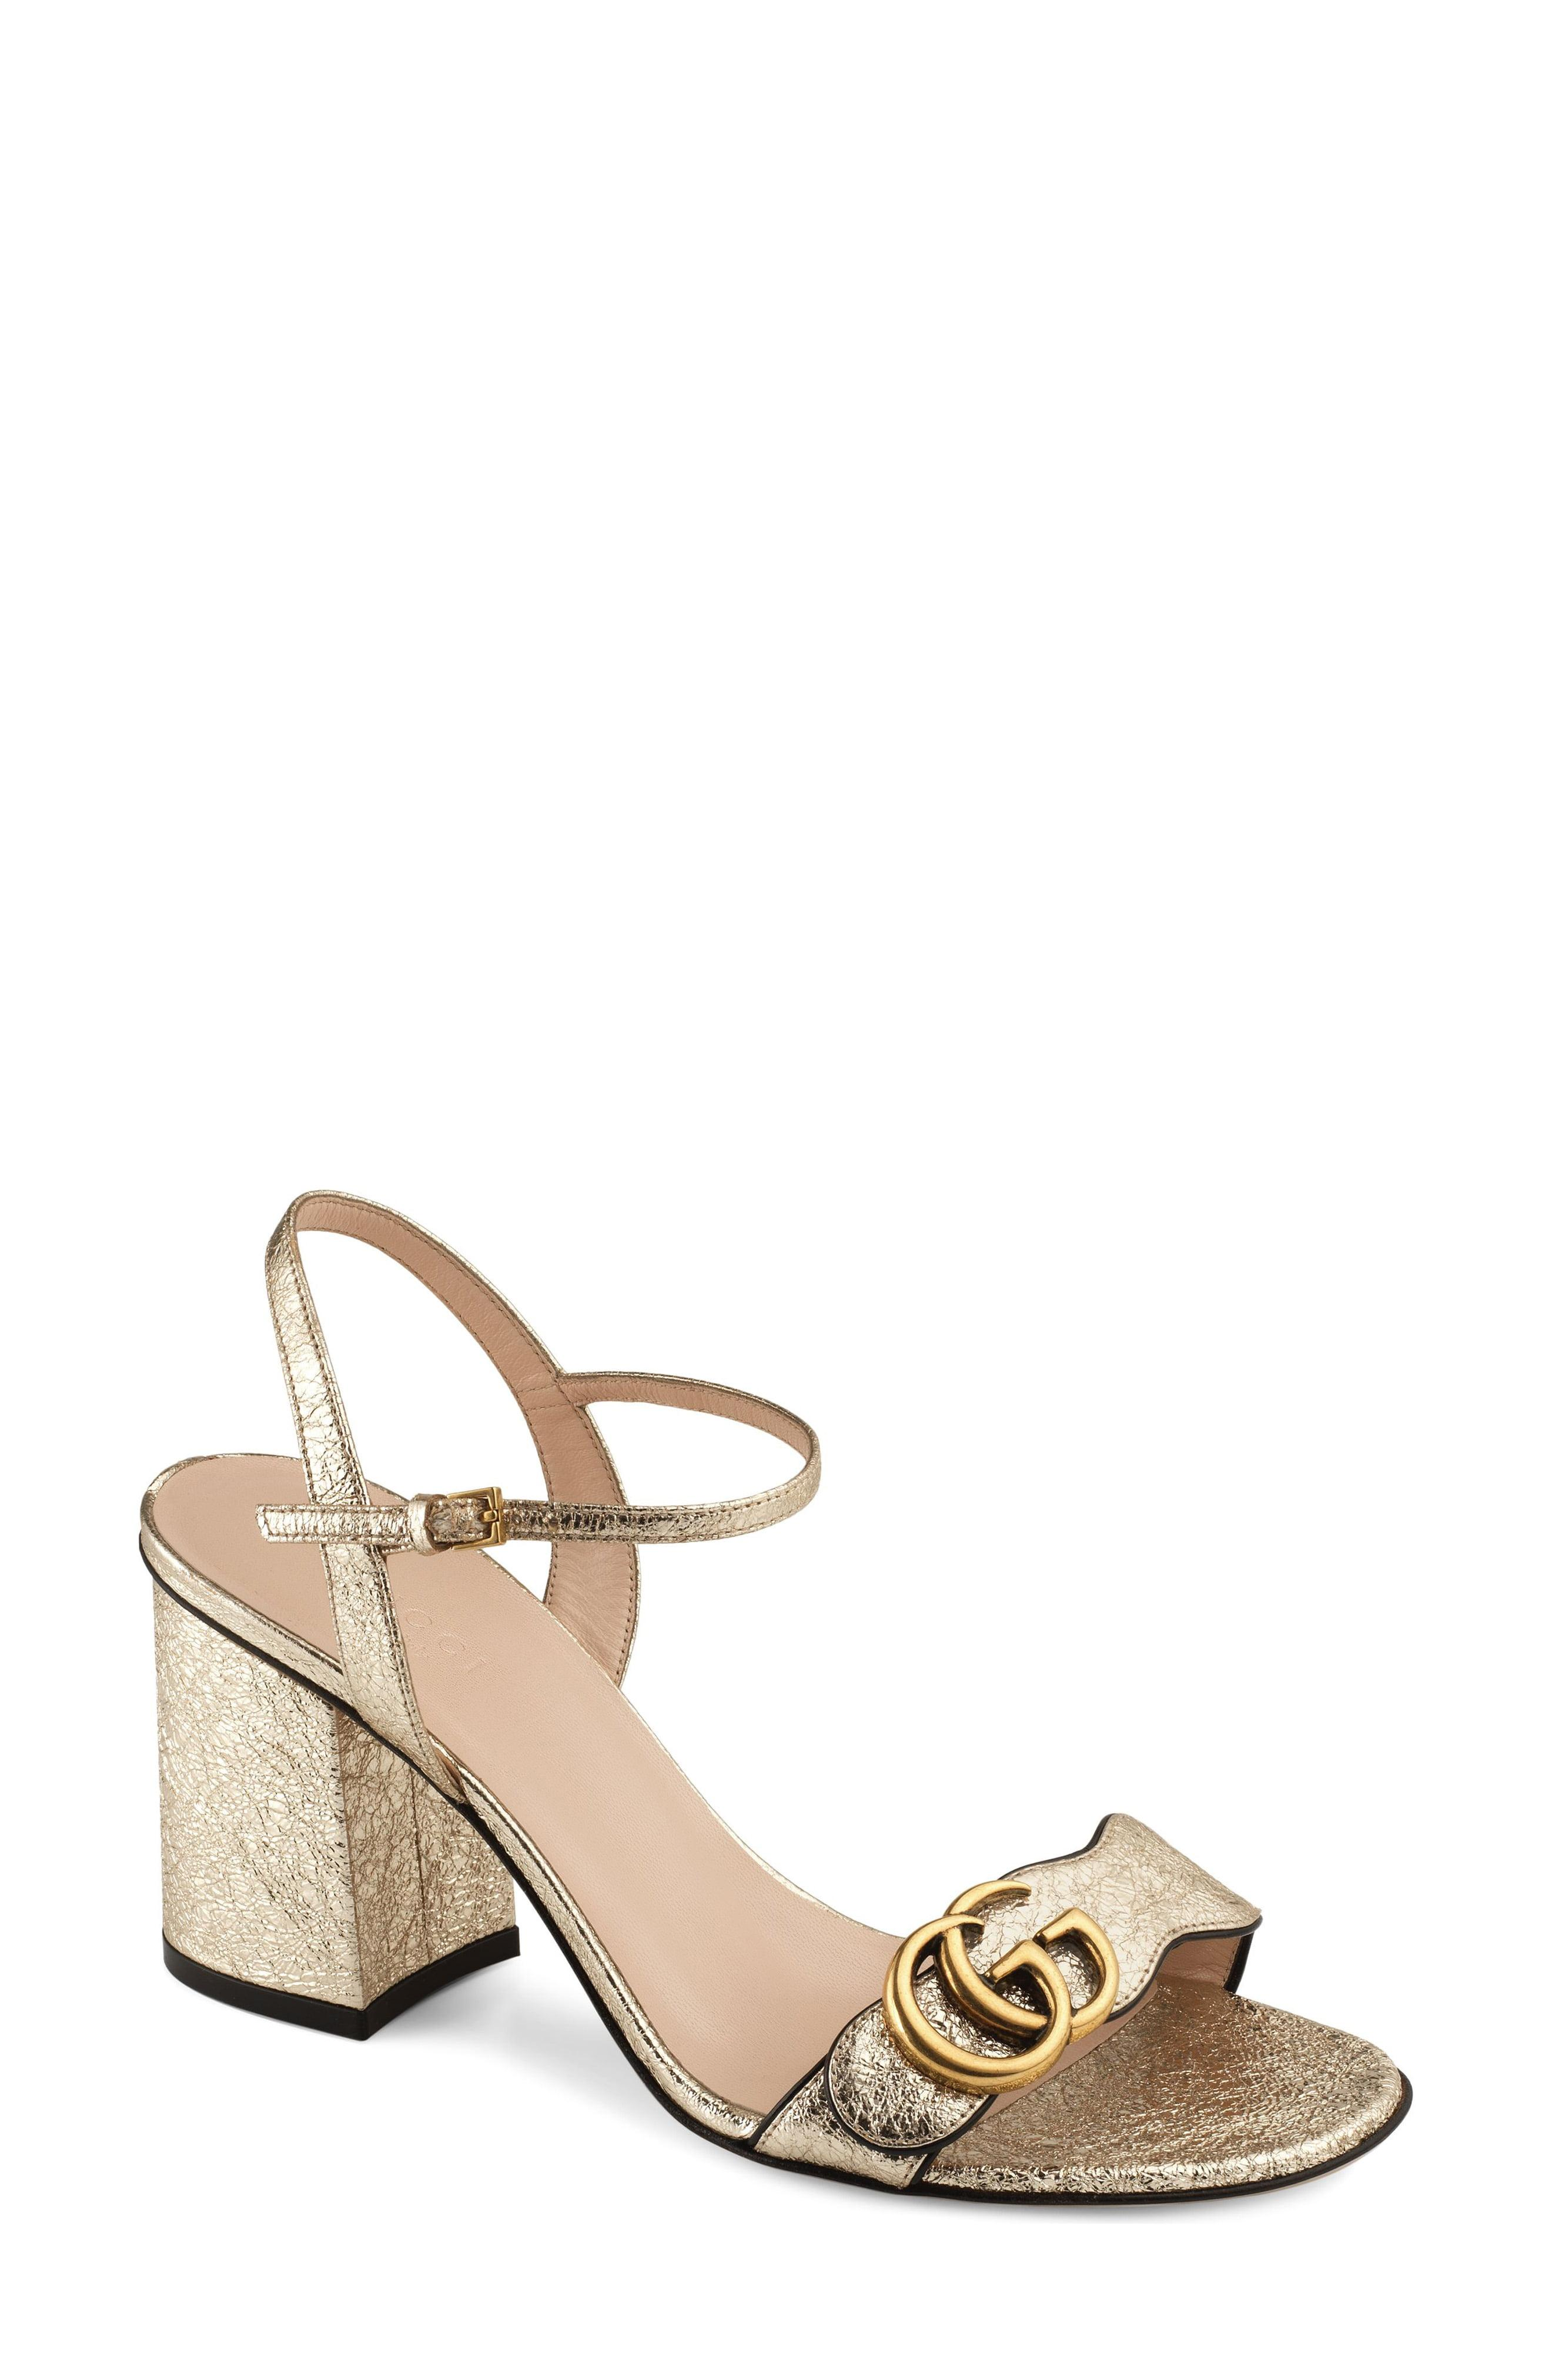 be6b97a7041 Lyst - Gucci Gg Marmont Sandal in Metallic